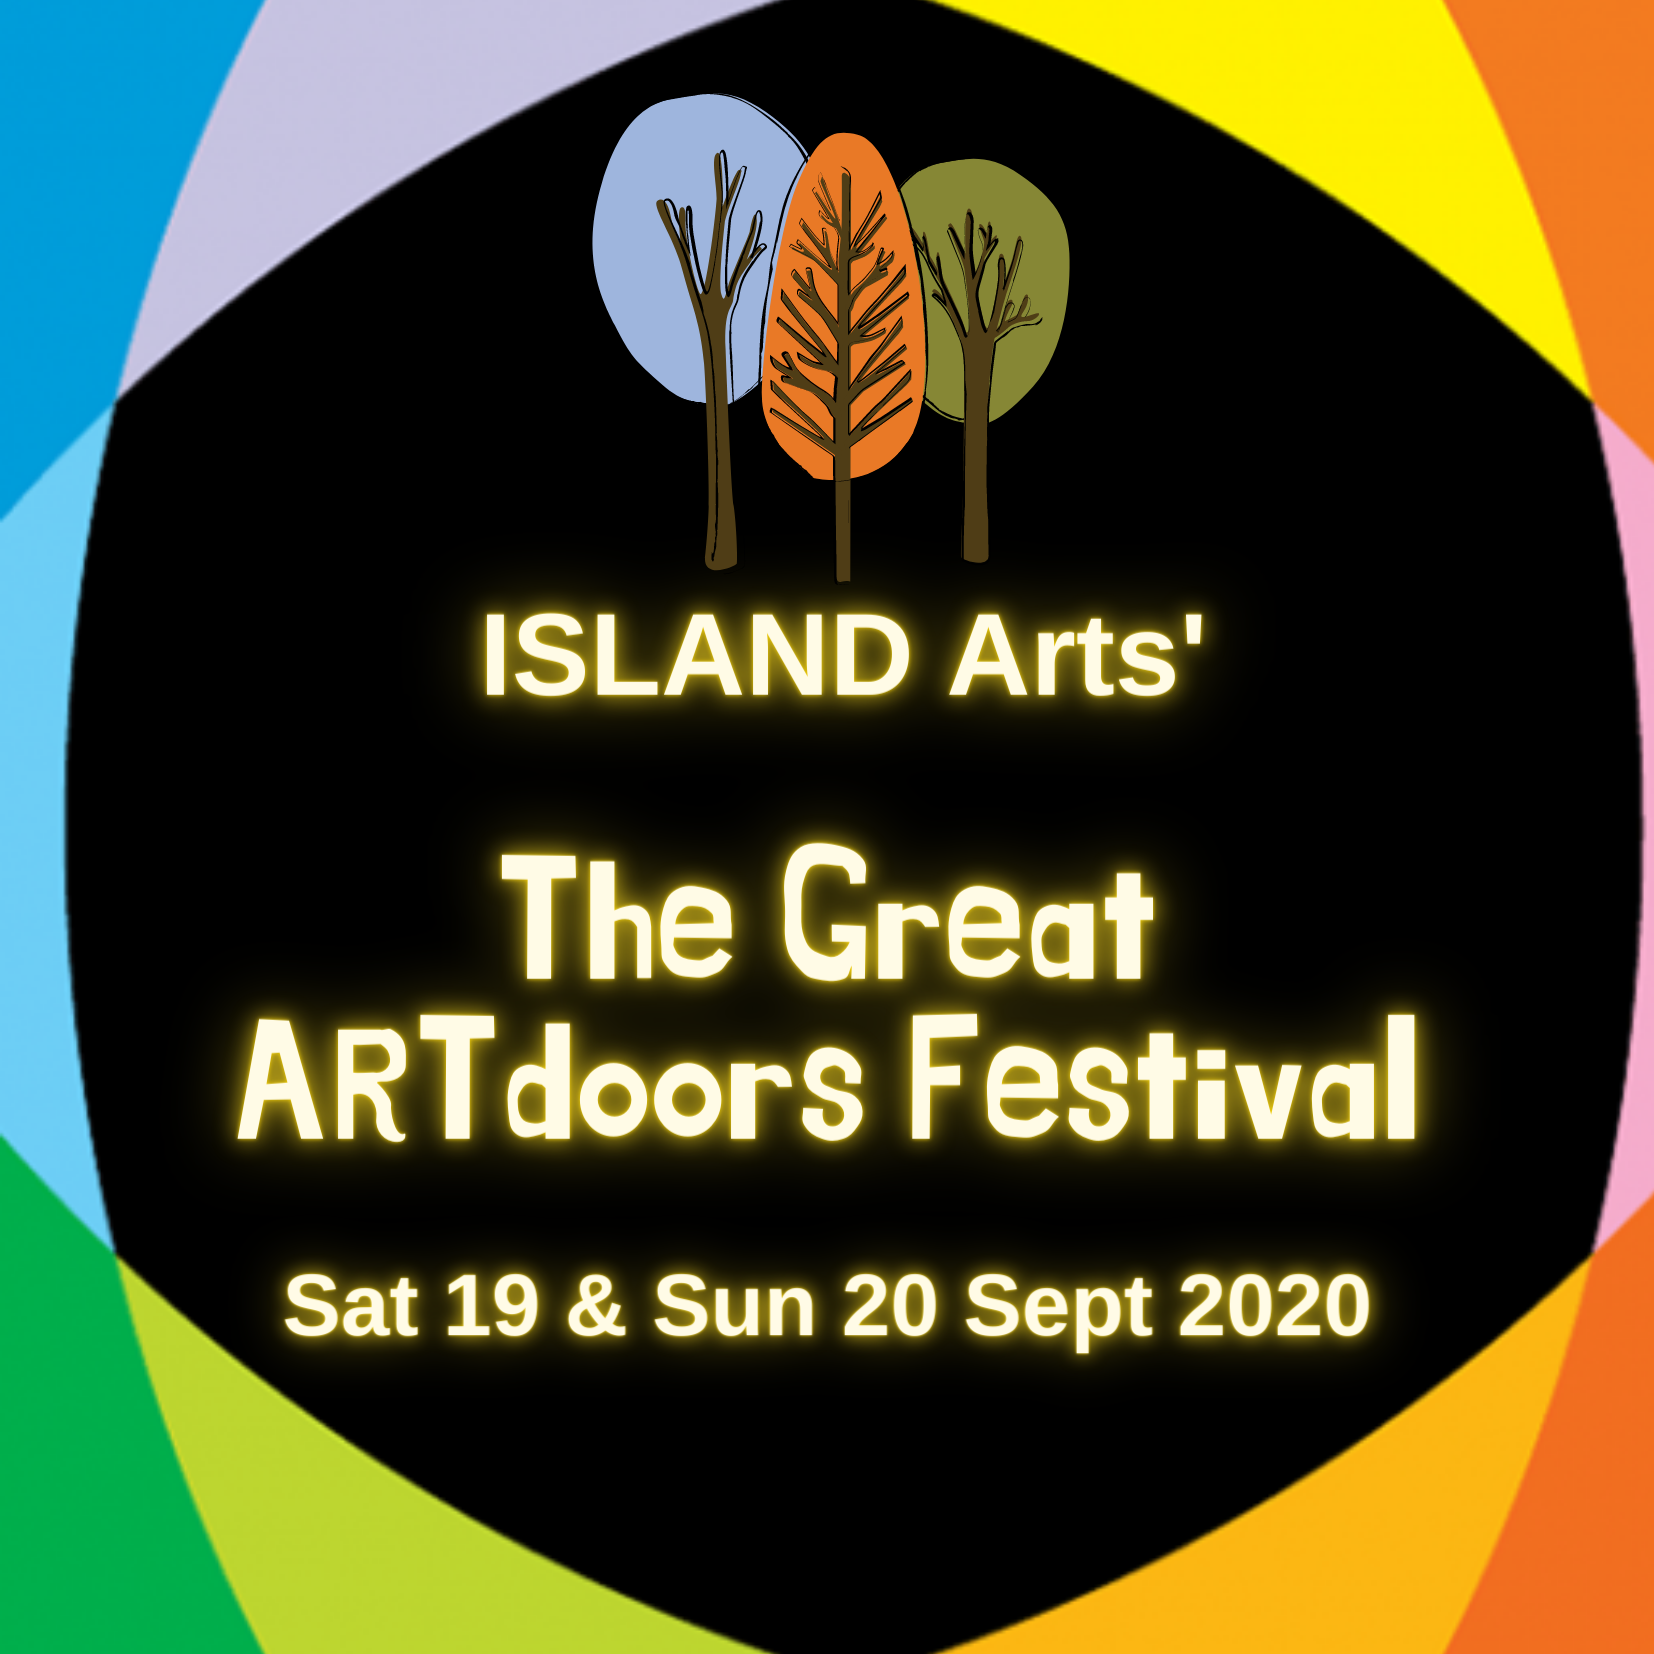 Catch-up on the Festive Fun of ISLAND Arts' 'Great ARTdoors Festival'